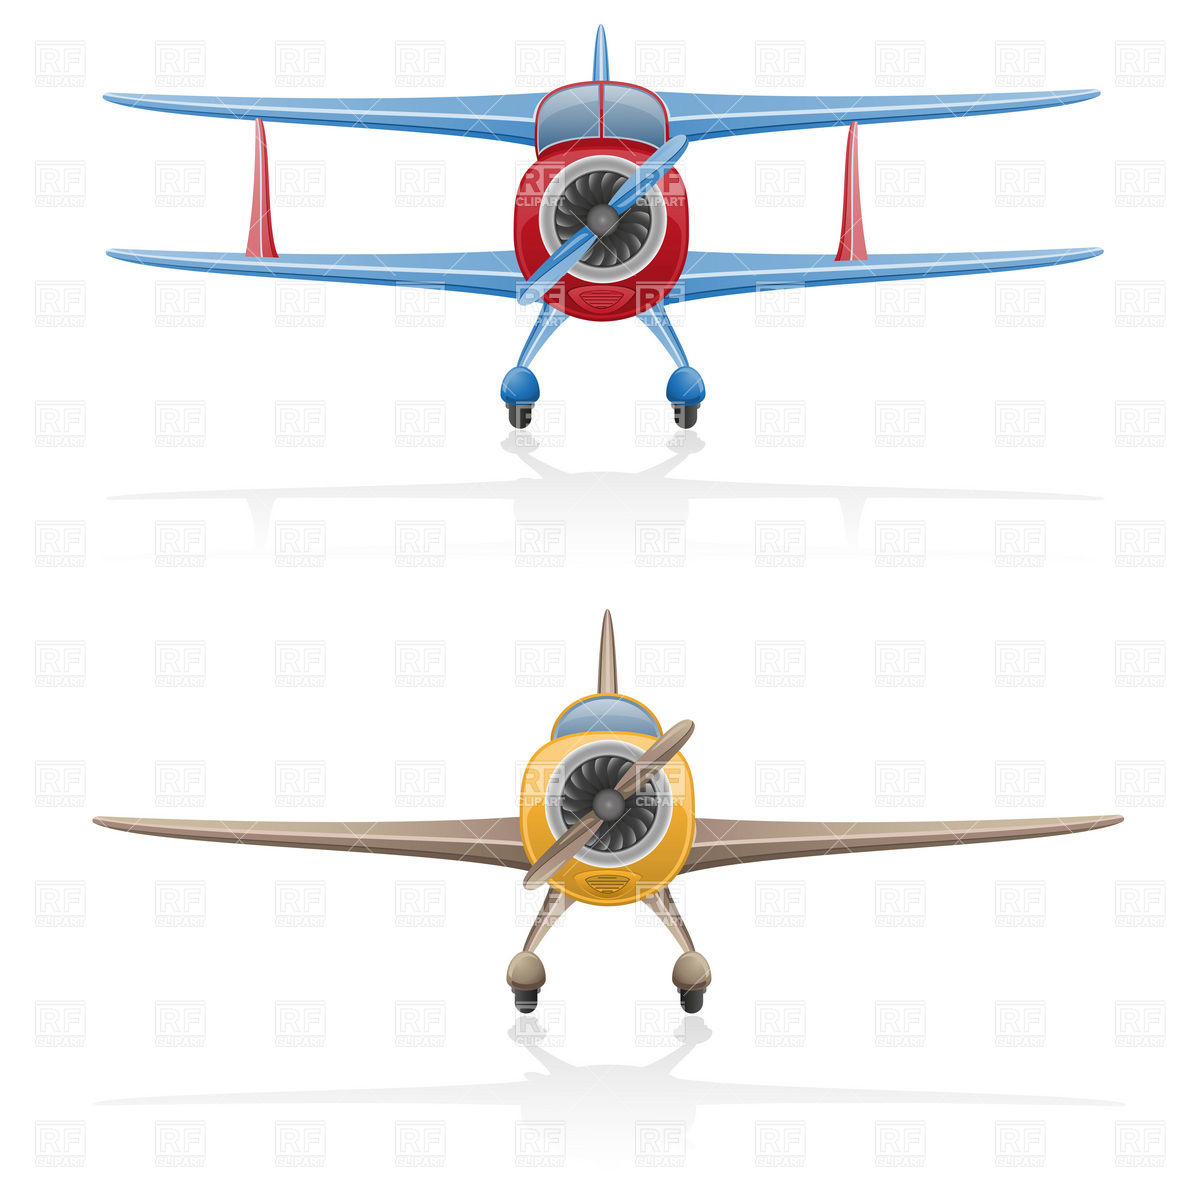 Plane clipart front png stock Front view of cartoon biplane with airscrew - old airplane Vector ... png stock